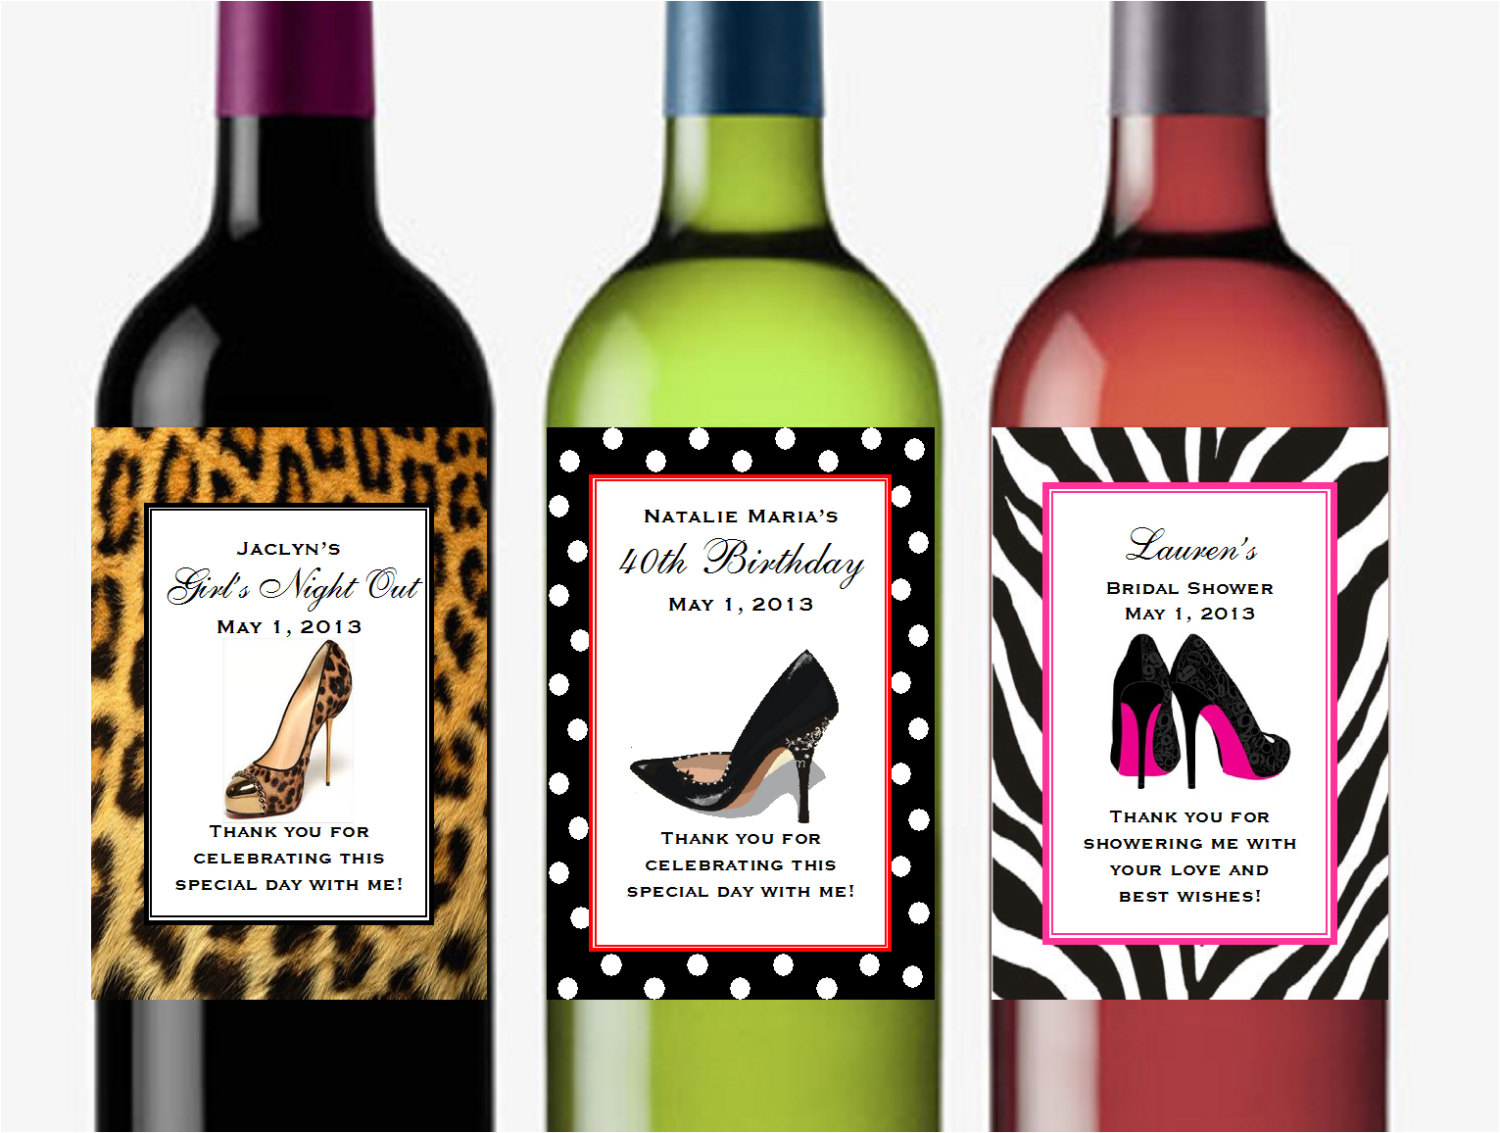 personalized wine labels for birthday ; cool-wine-bottle-label-printing-wine-labels-to-from-party-favors-to-executive-business_mini-wine-bottles